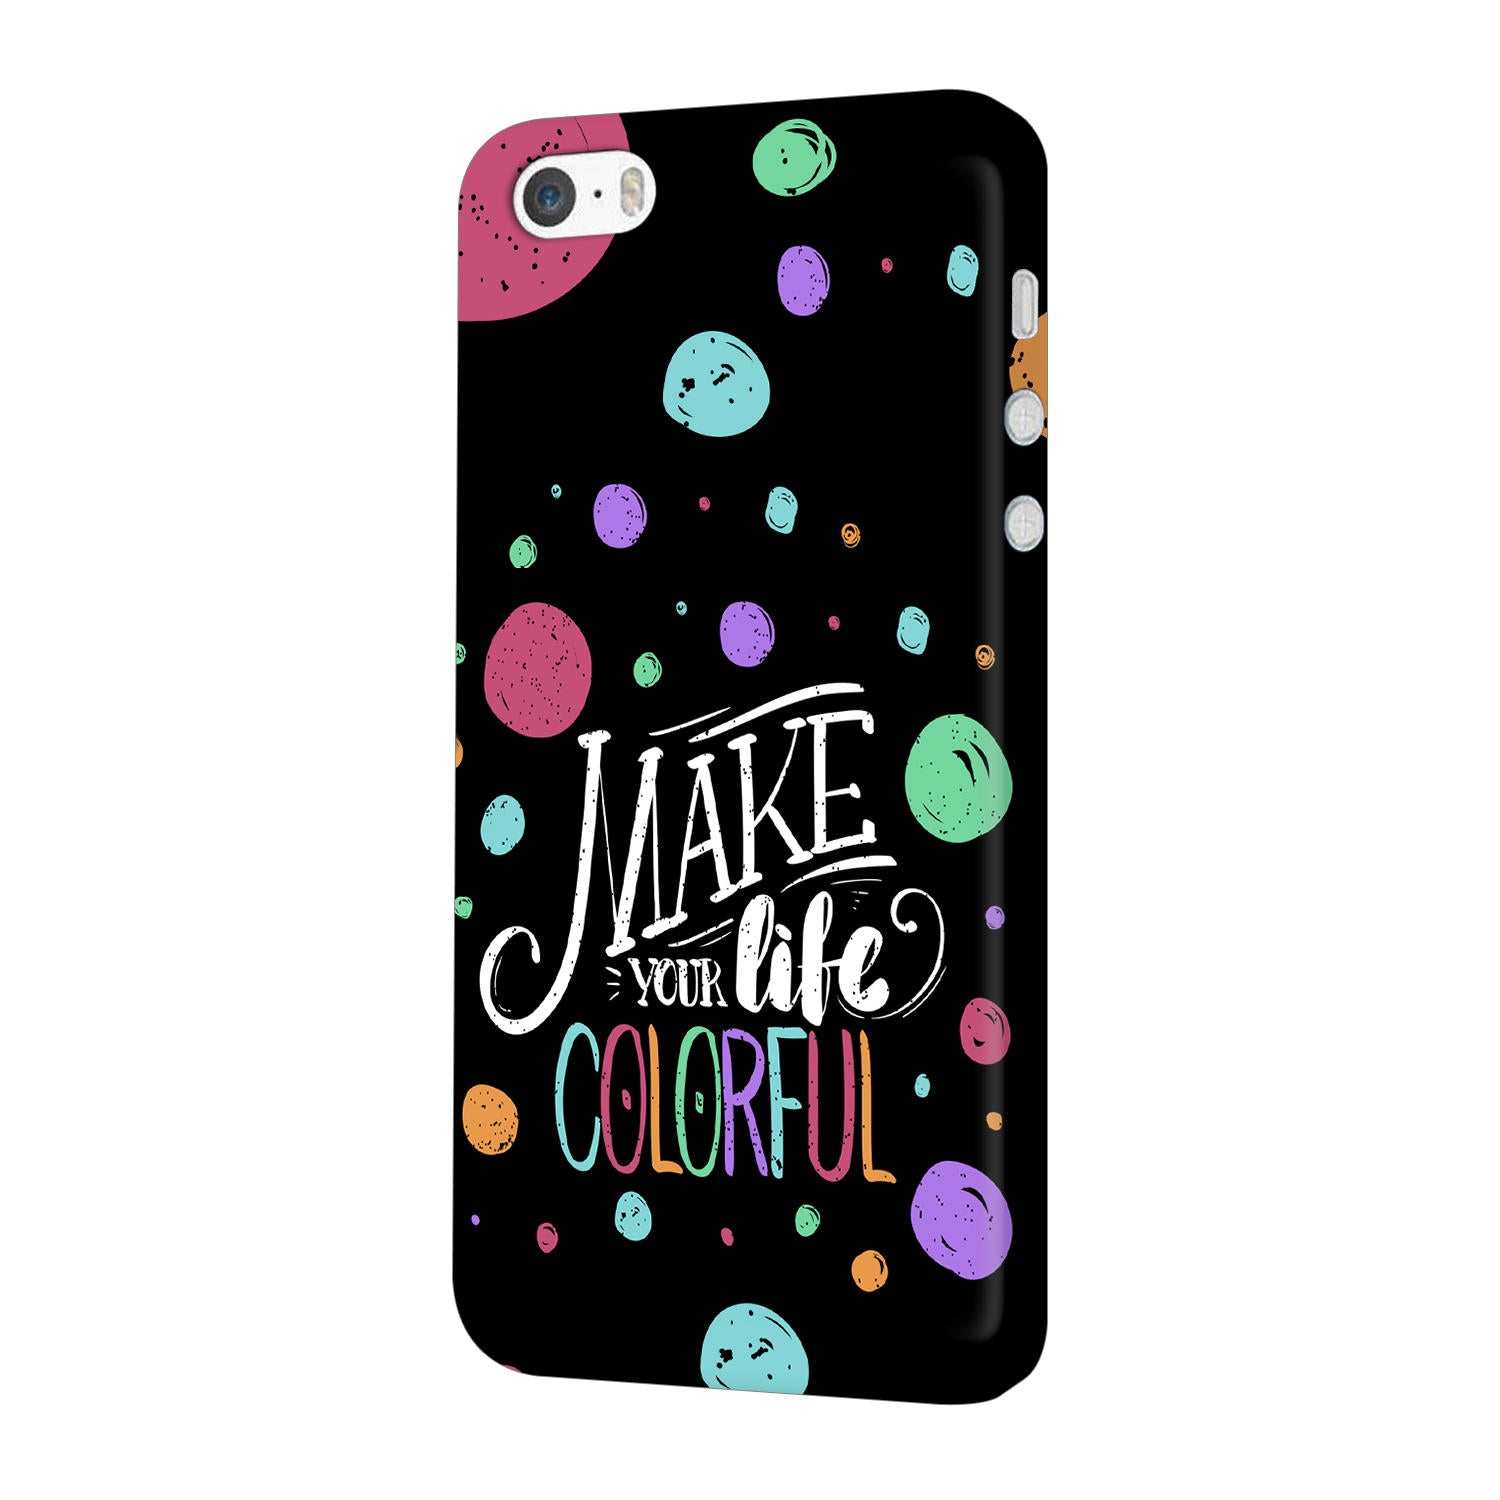 Make Your Life Colorful Motivational Quote iPhone 5 Mobile Cover Case